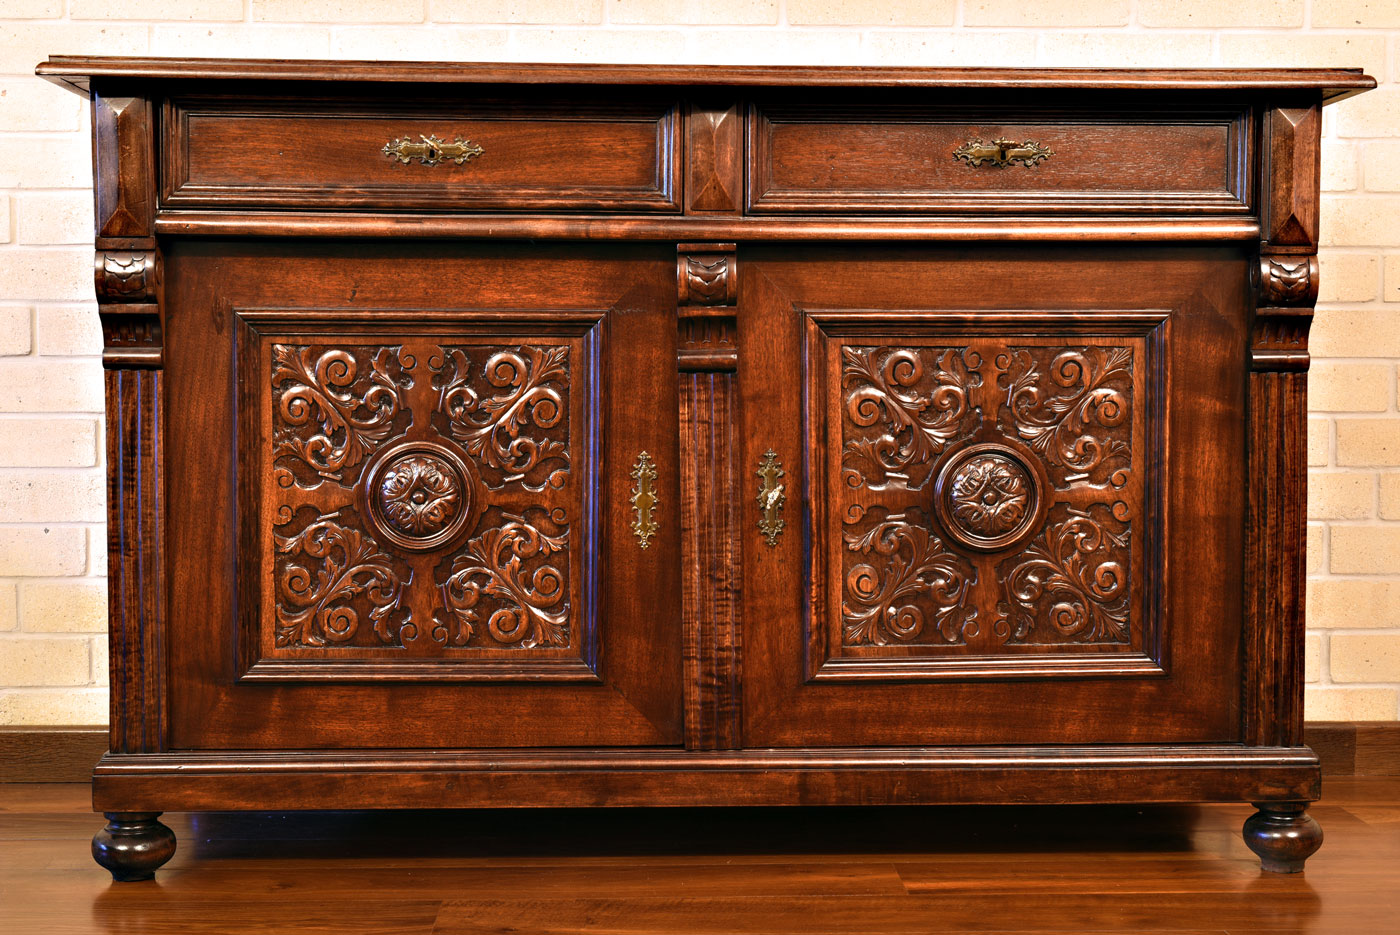 Custom Cabinetry Rochester NY - Craftworks Custom Cabinetry - Rochester, NY